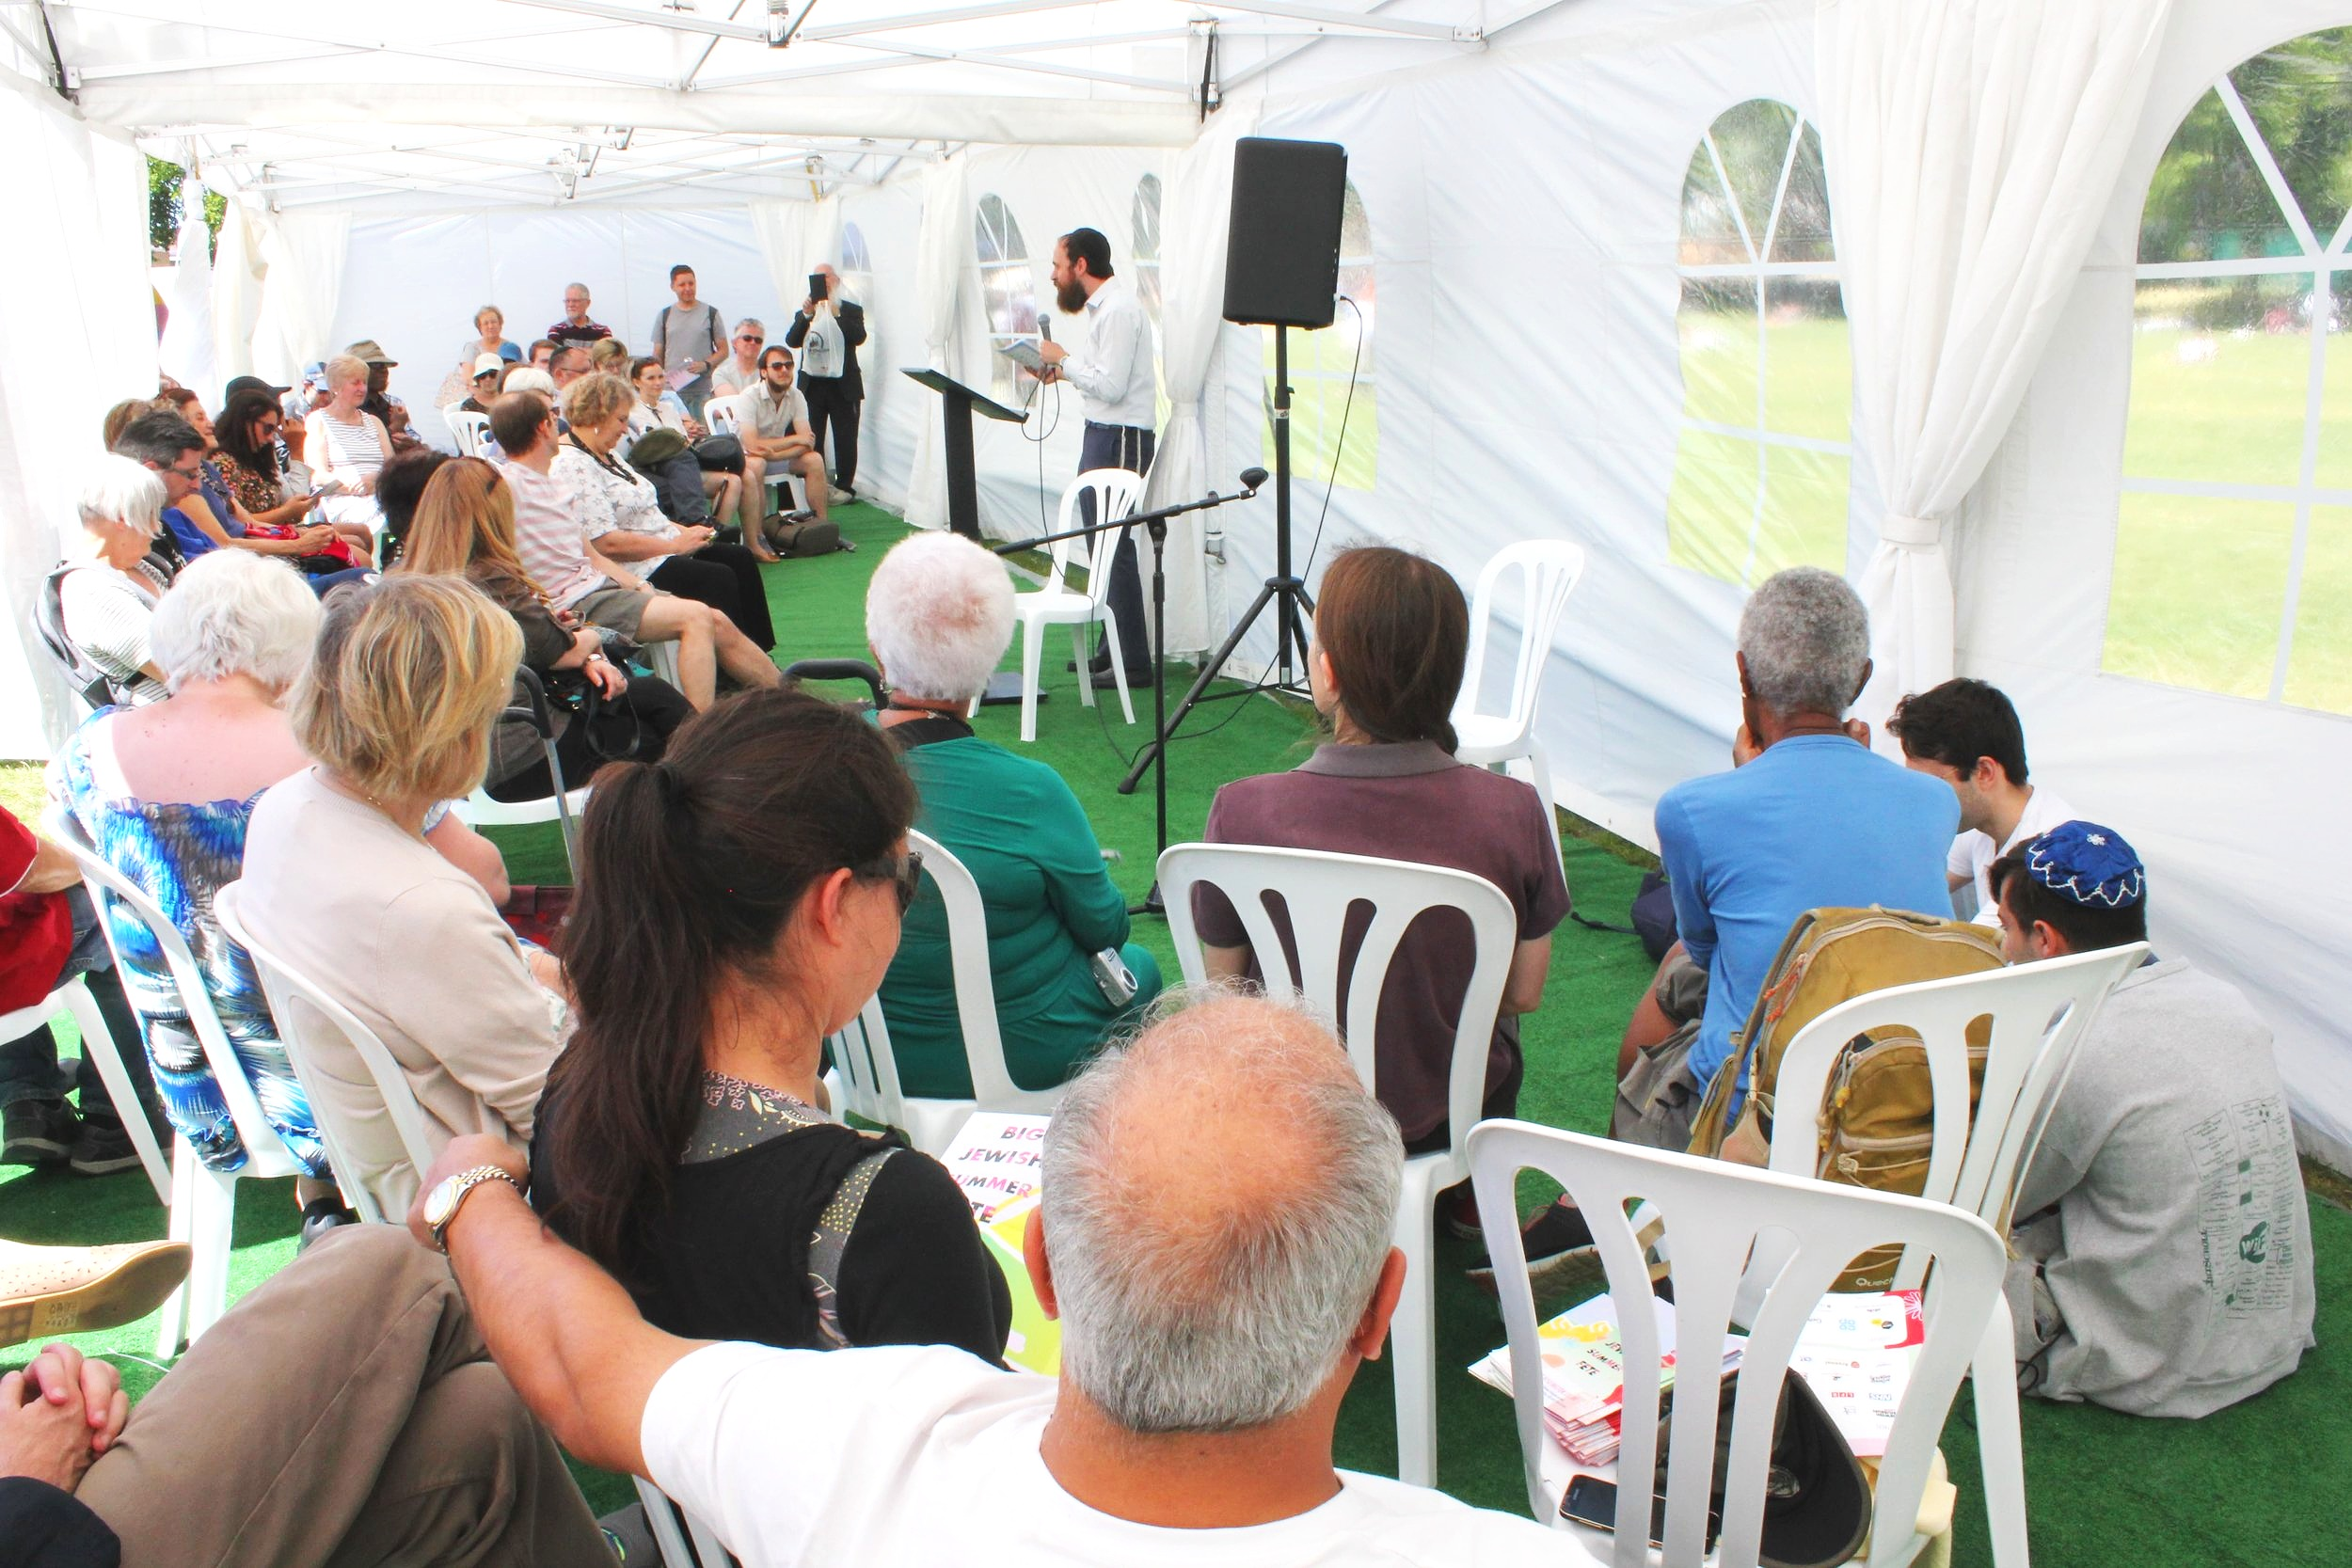 Come down to Speakers' Corner and explore Jewish culture with our stellar line-up of speakers.